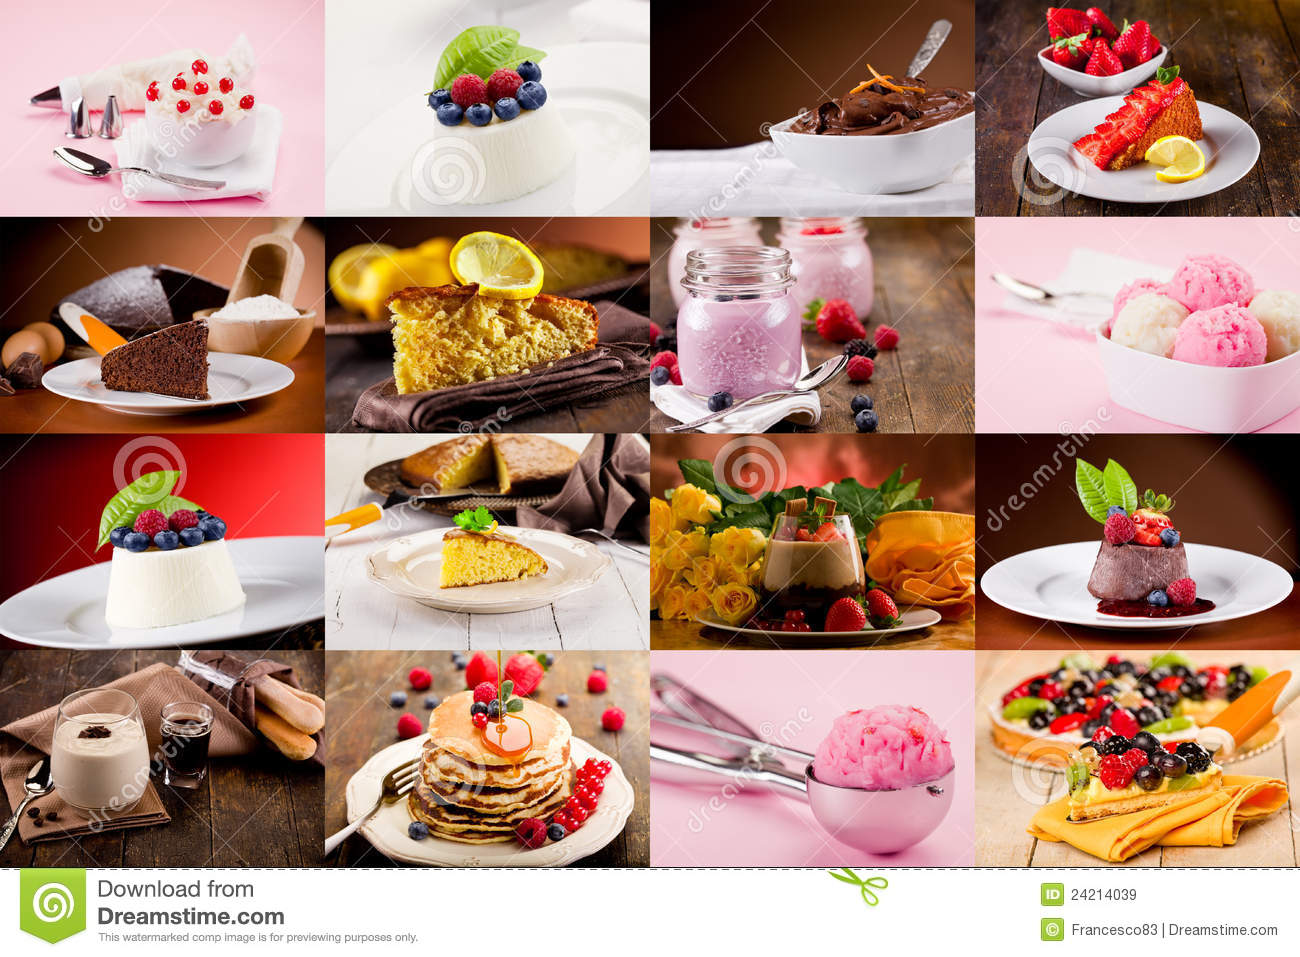 Dessert Collage Royalty Free Stock Images - Image: 24214039